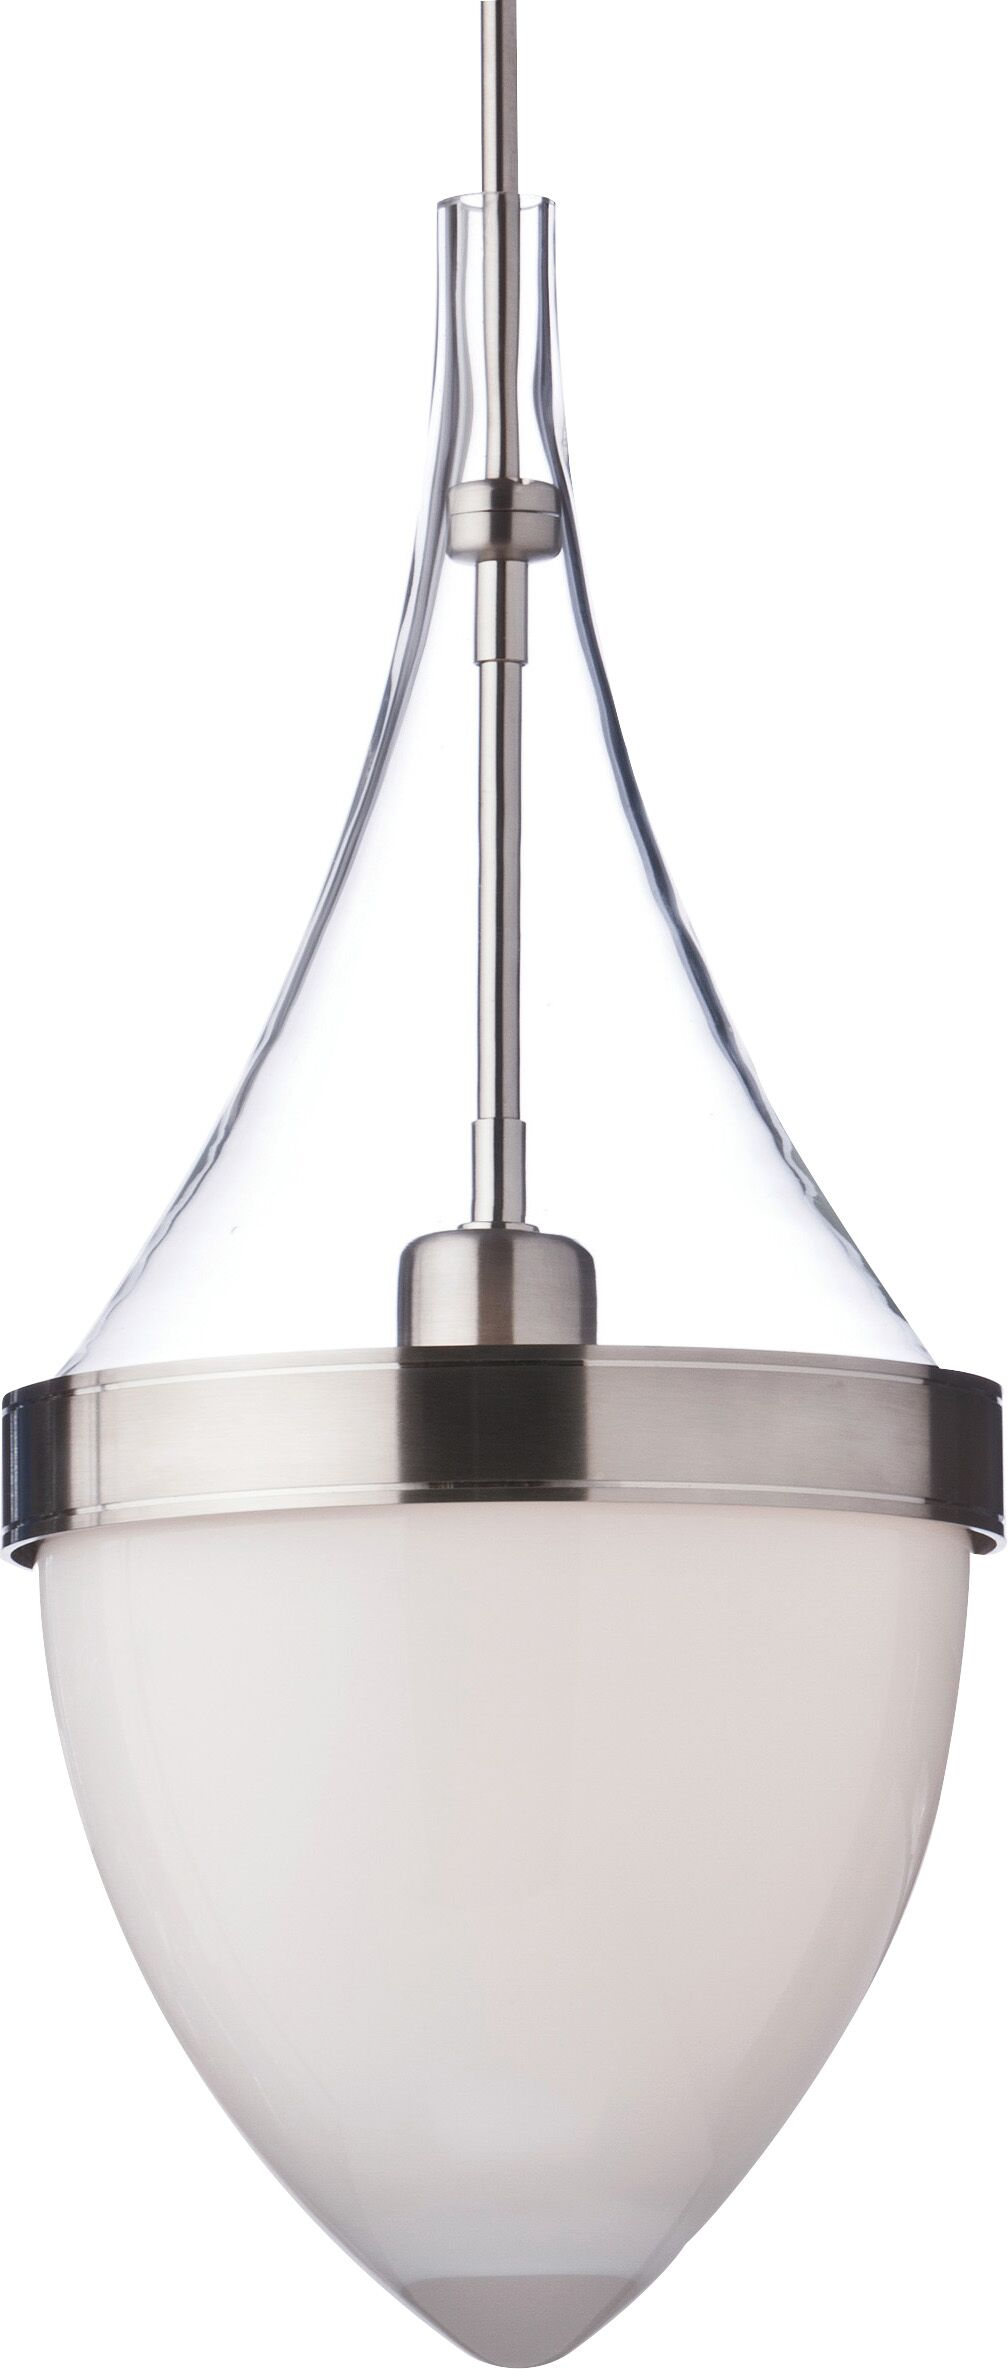 Parfum Grande 1-Light Teardrop Pendant Bulb Type: Compact Fluorescent, Shade Color: Clear / White, Finish: Black